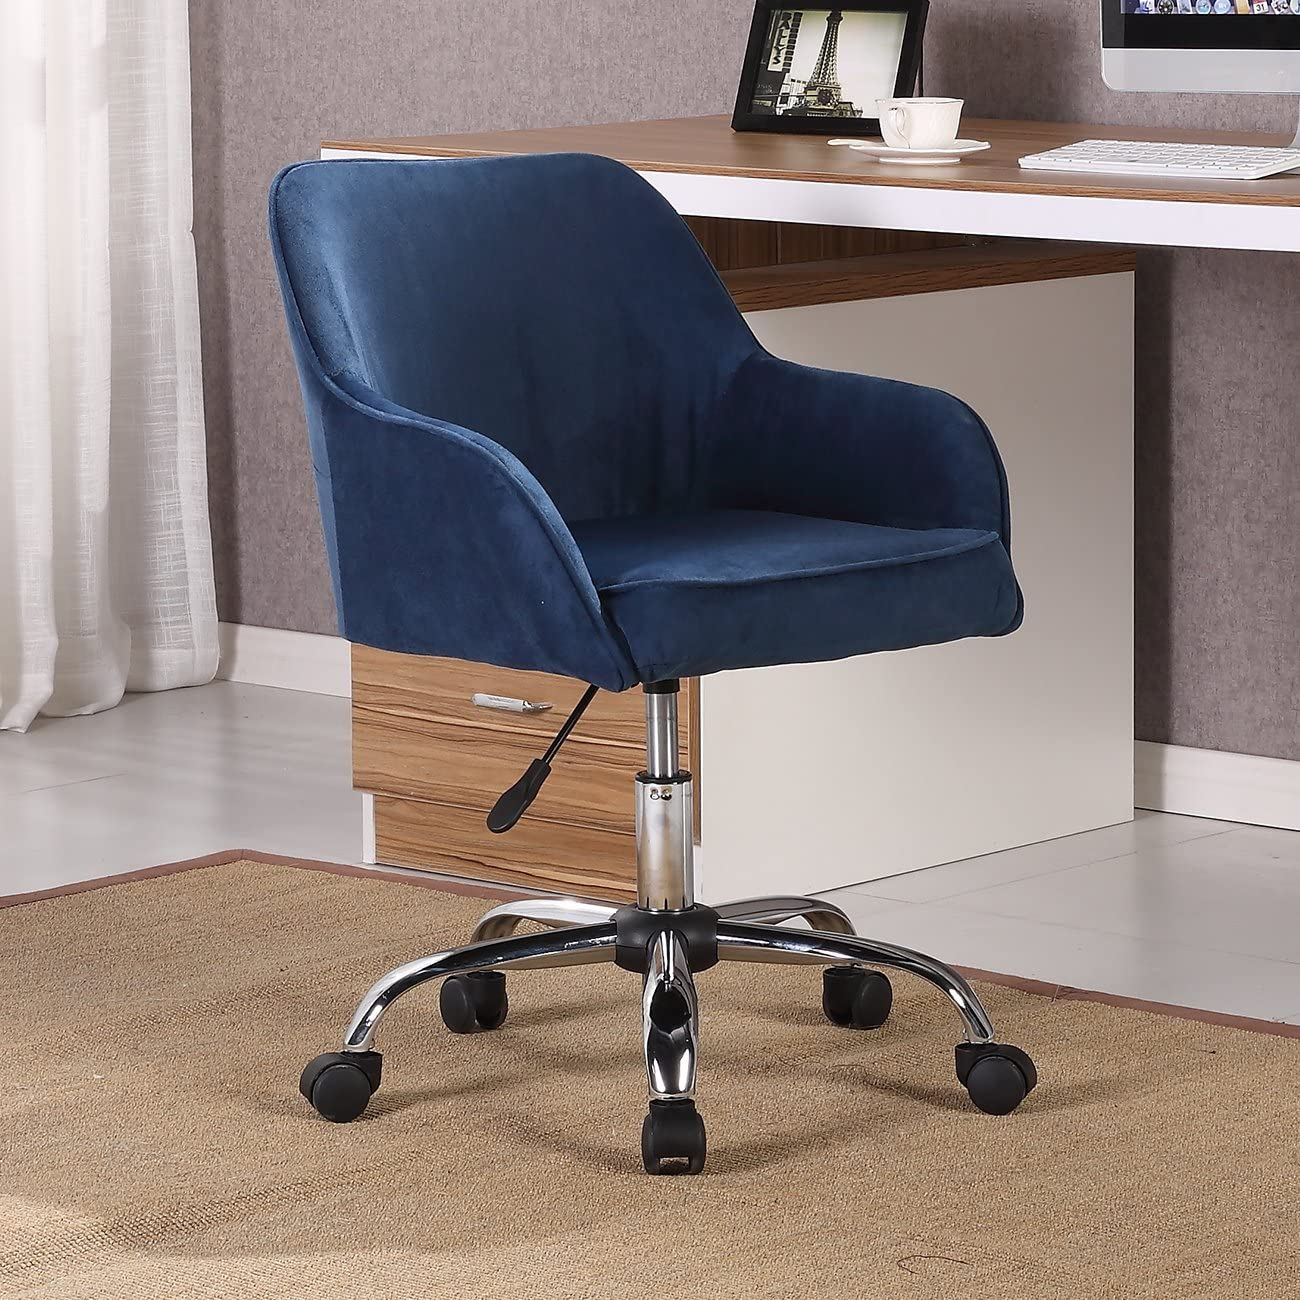 BELLEZE Office Chair Adjustable Swivel Mid-Back Desk Chair Task Velvet Seat Backrest Support, Blue